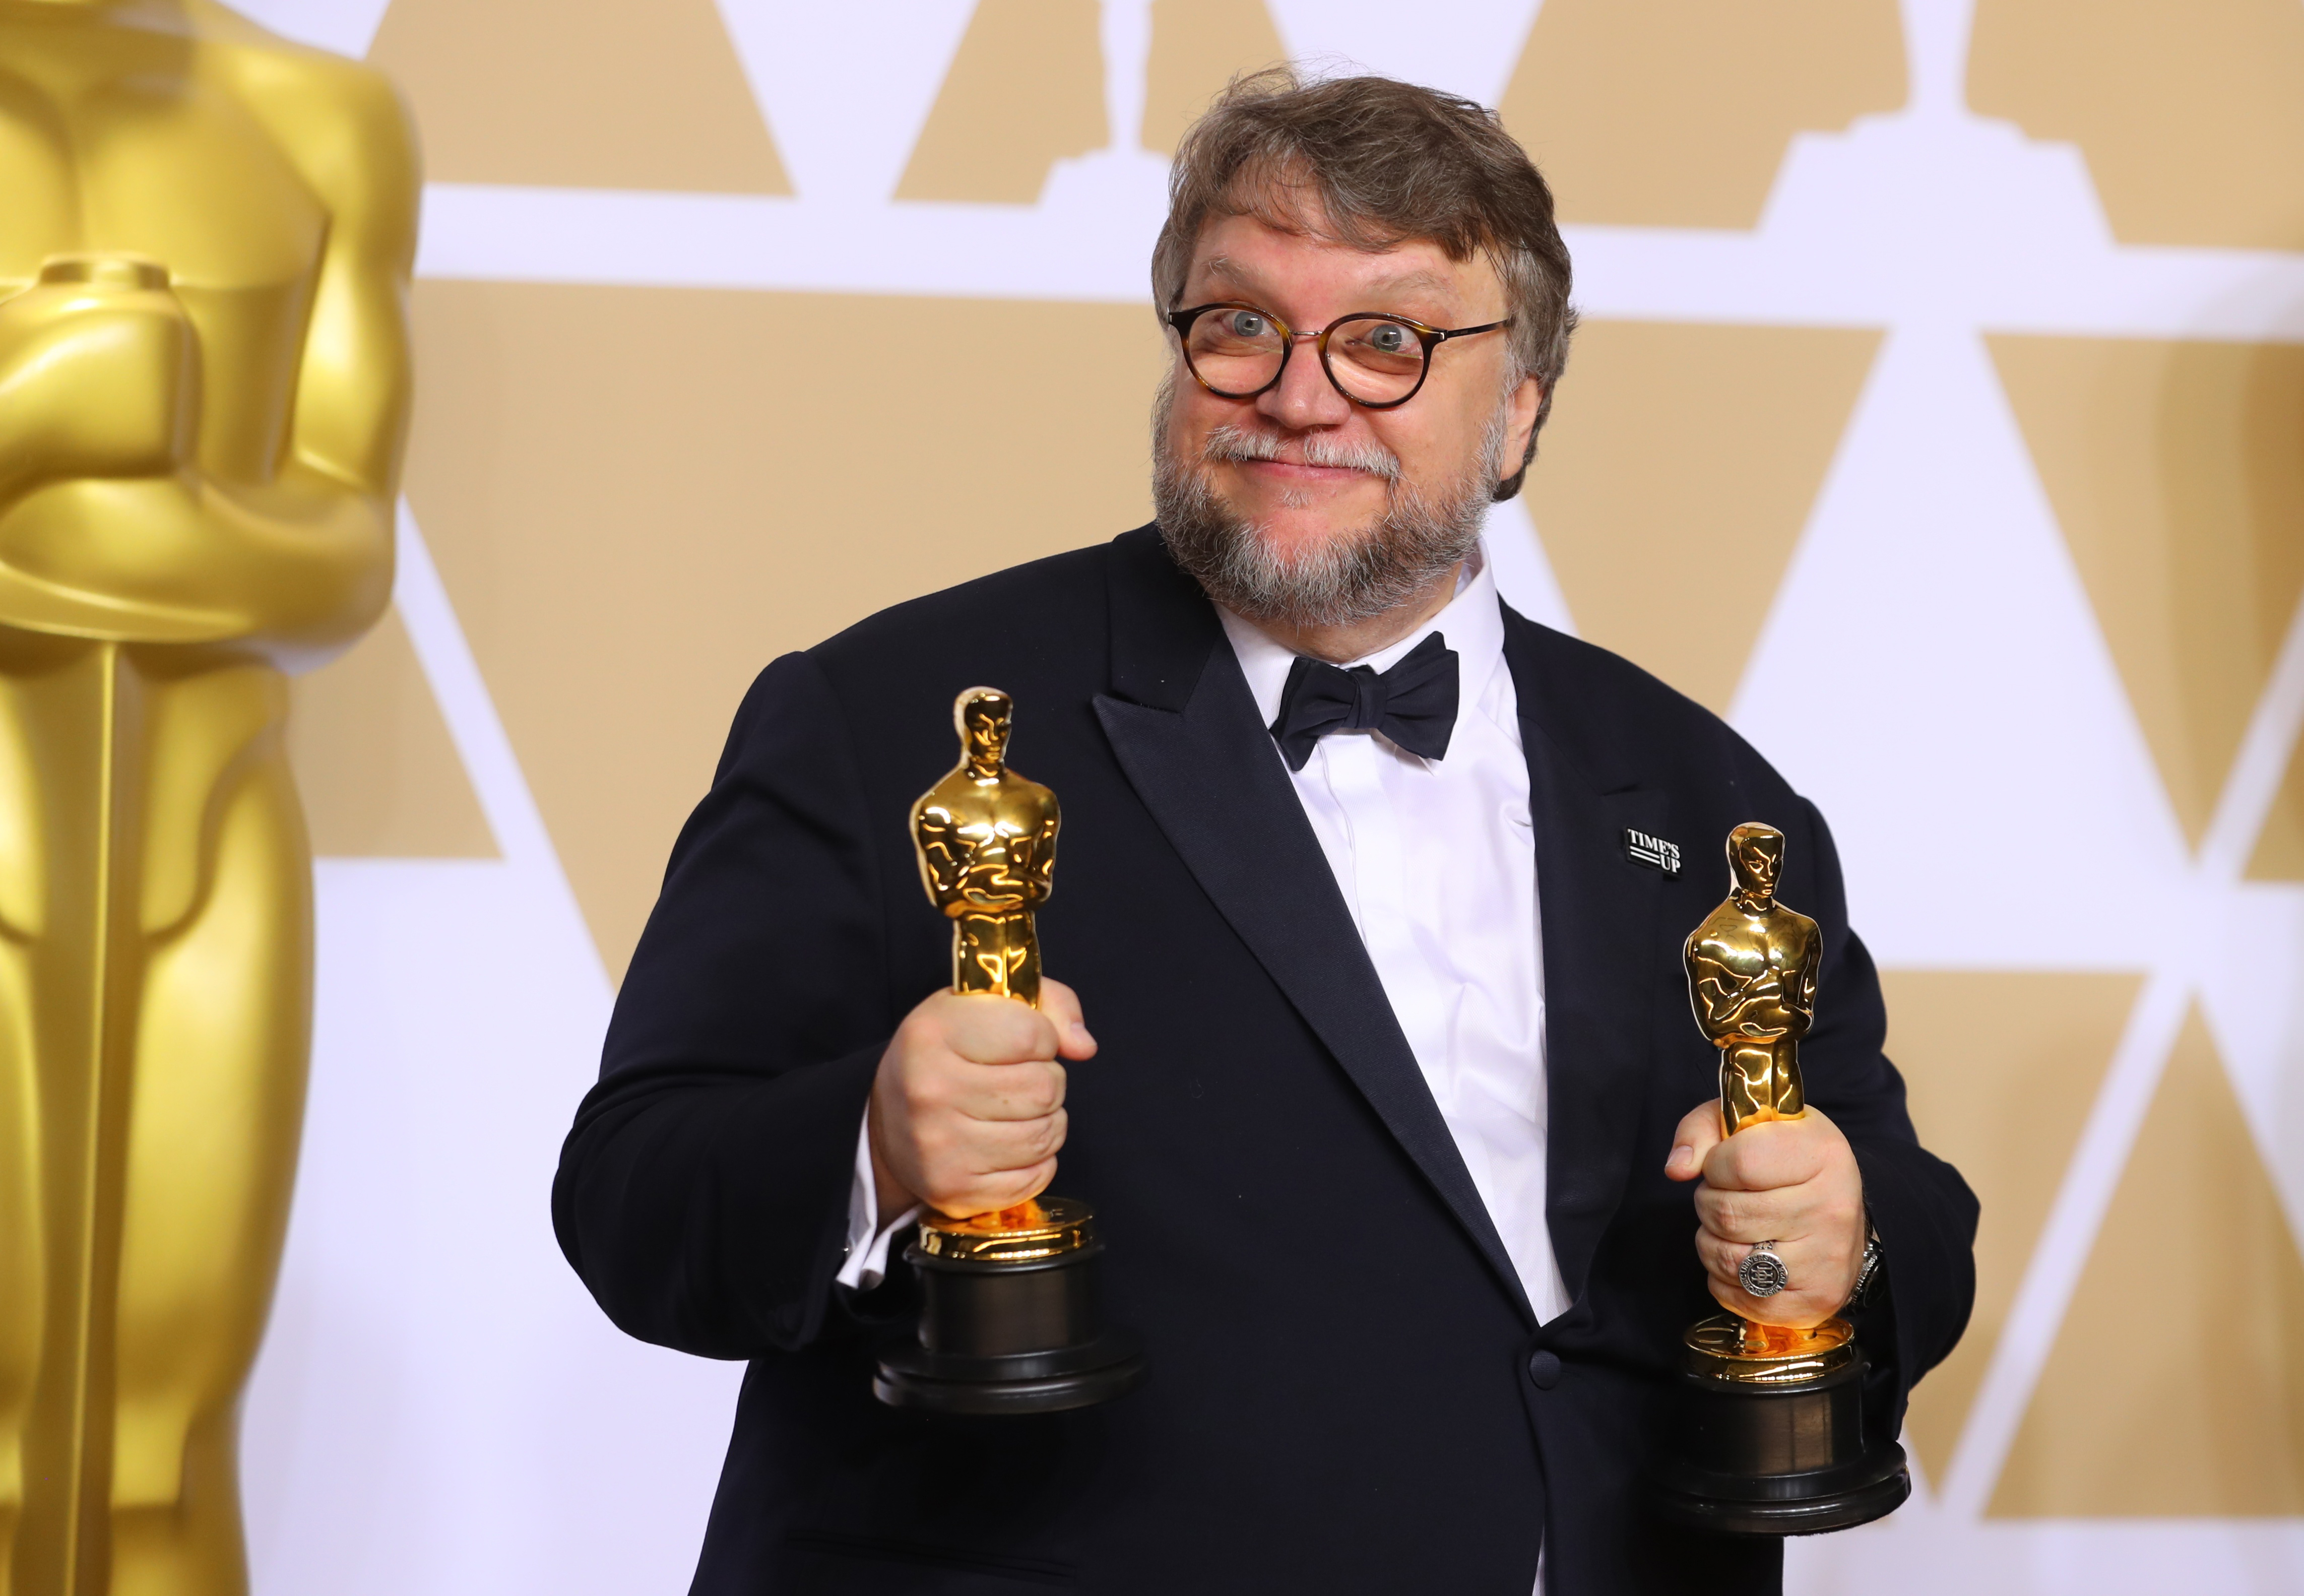 2018 03 05T054910Z 2076601581 HP1EE350G5YLS RTRMADP 3 AWARDS OSCARS